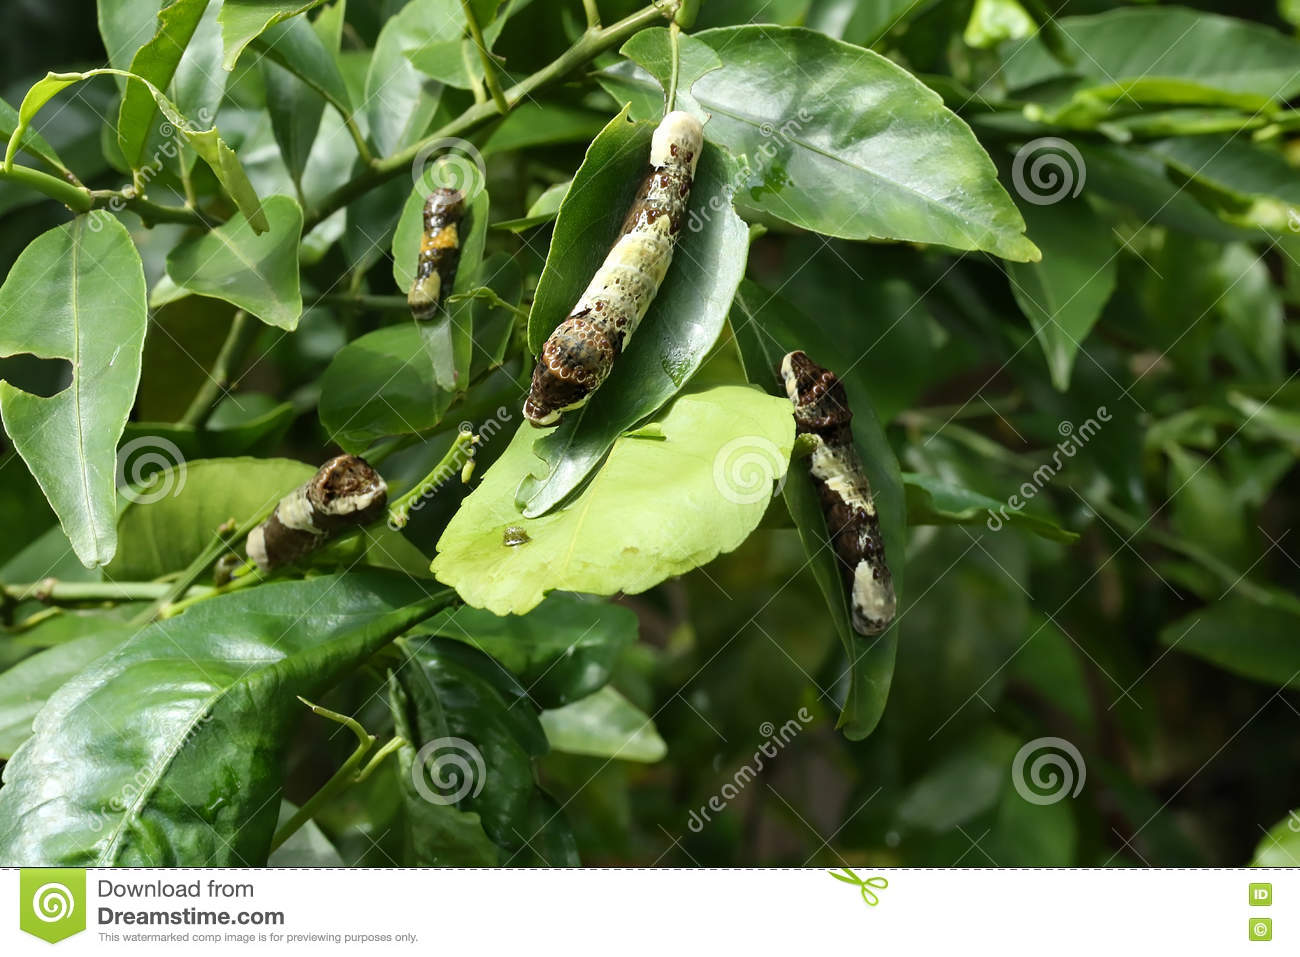 Giant Swallowtail caterpillars eating leaves